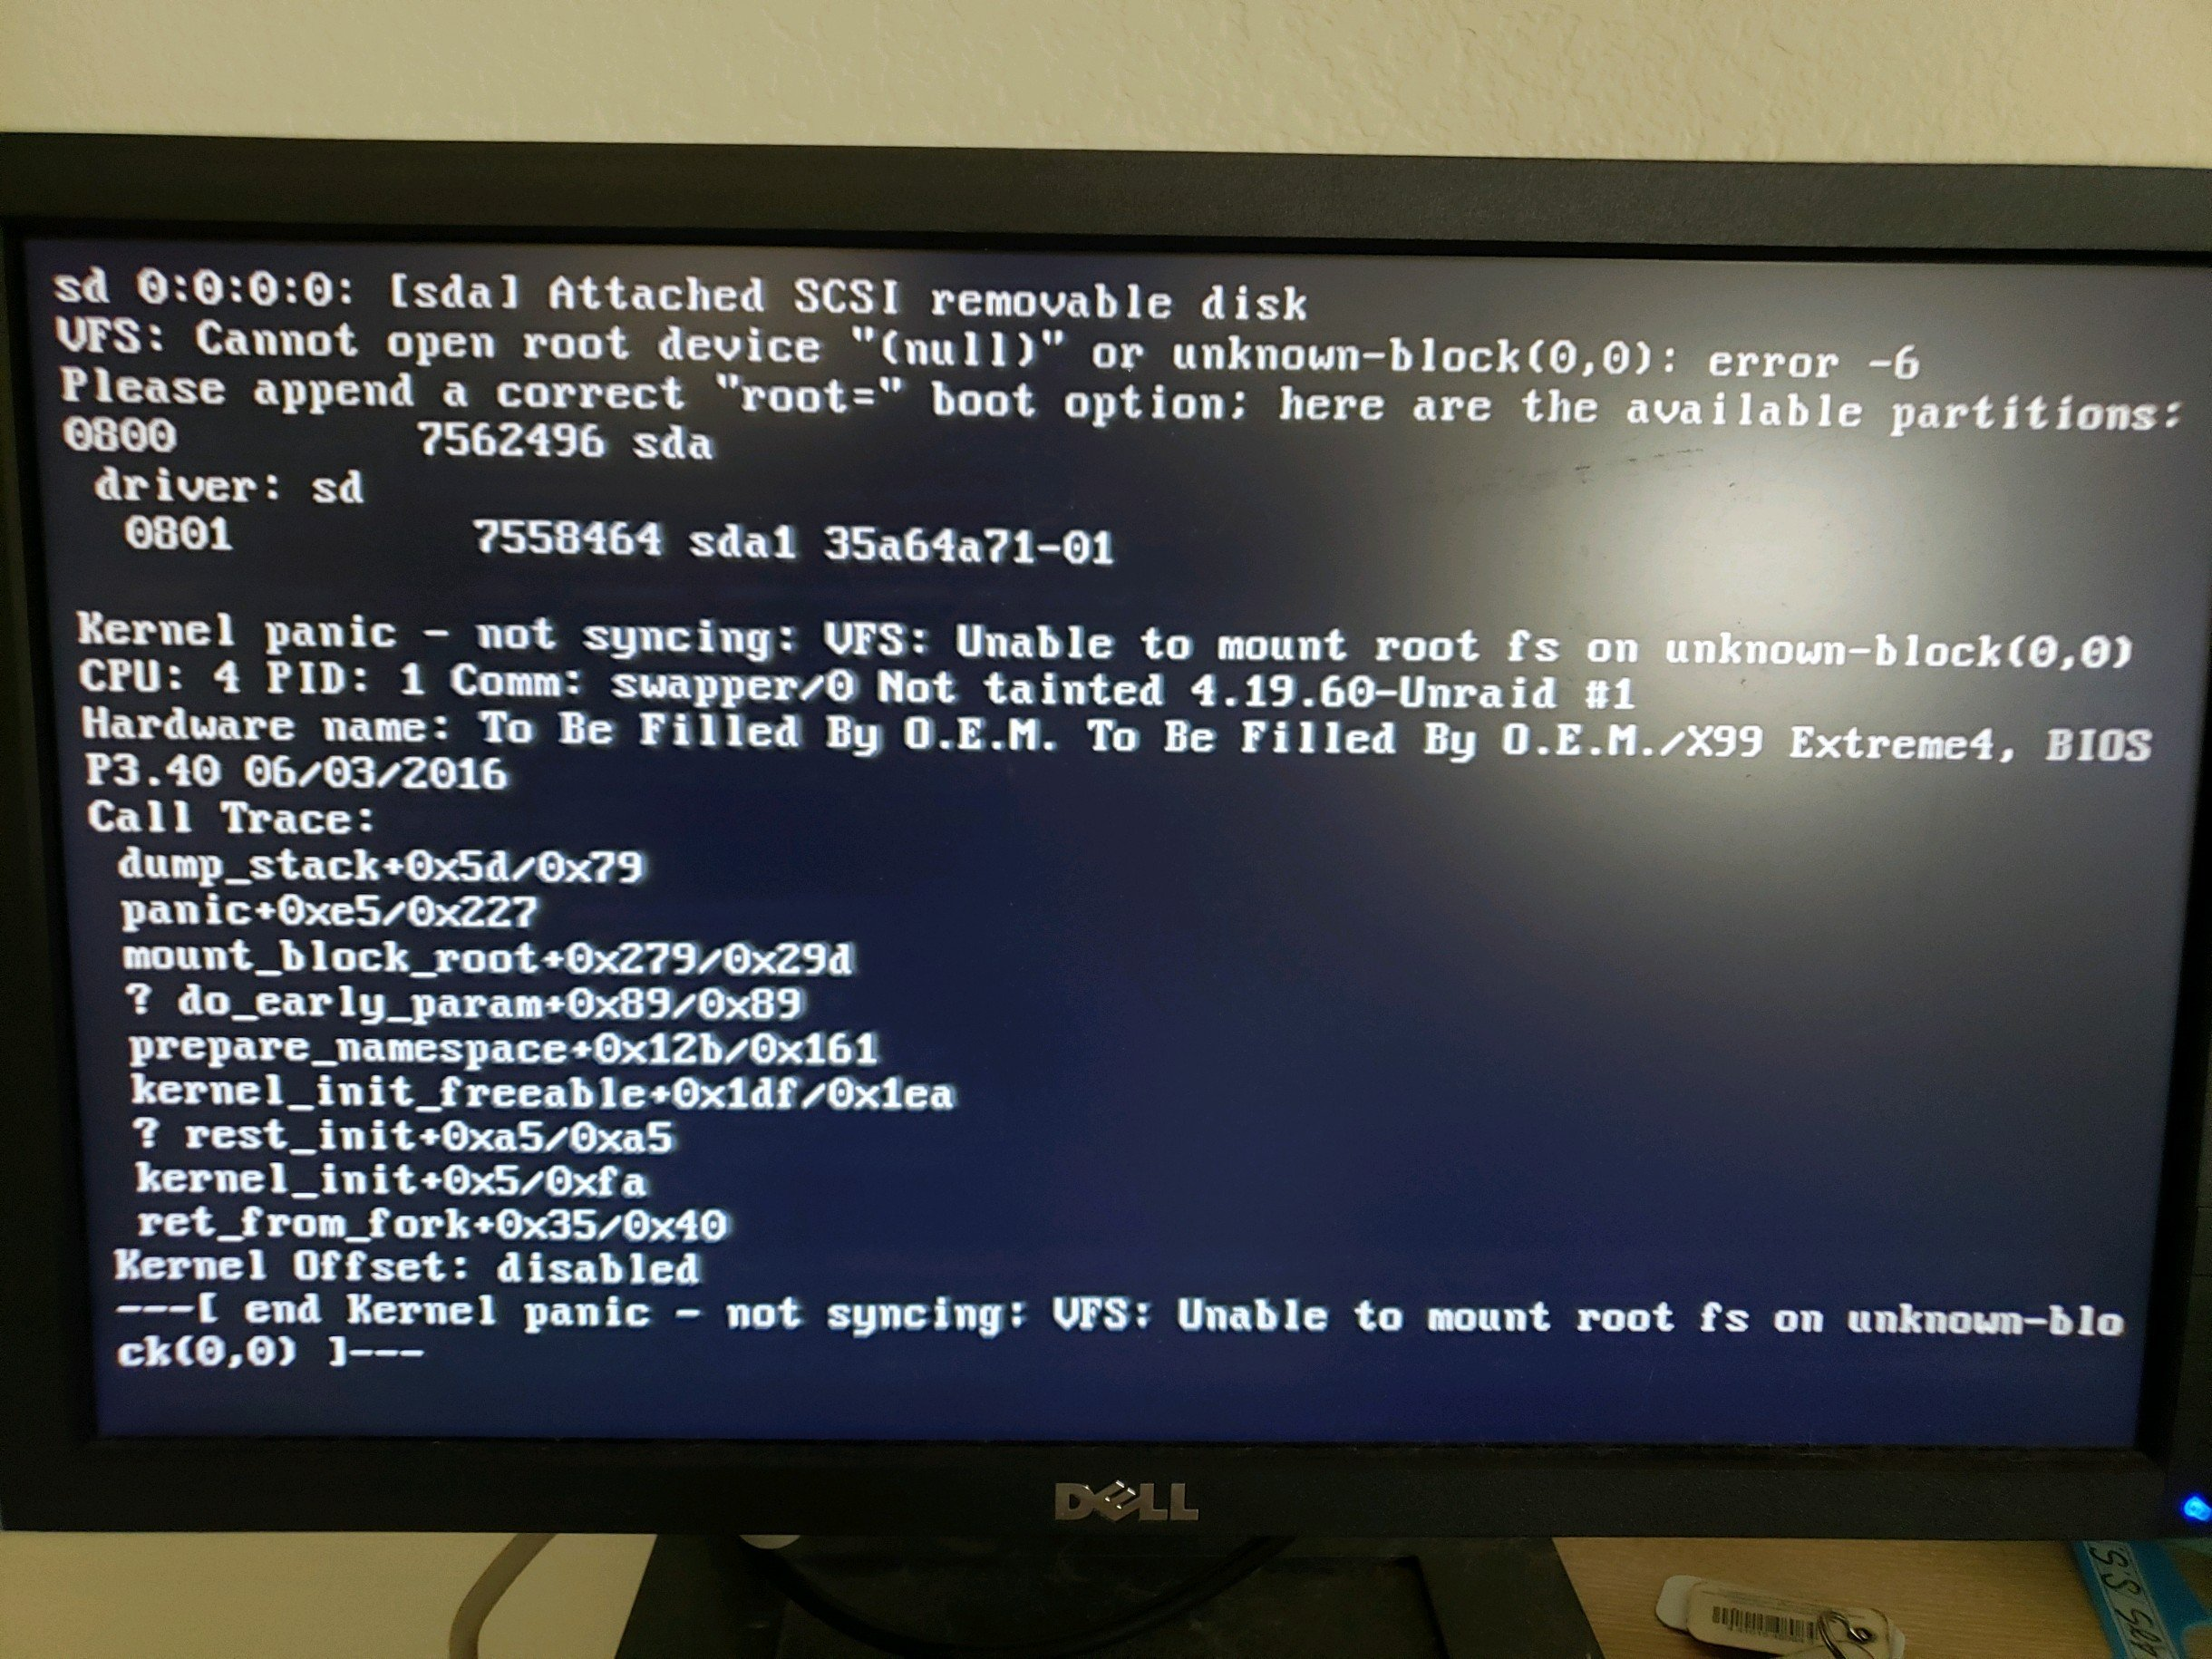 Unraid only boots to gui mode - General Support - Unraid